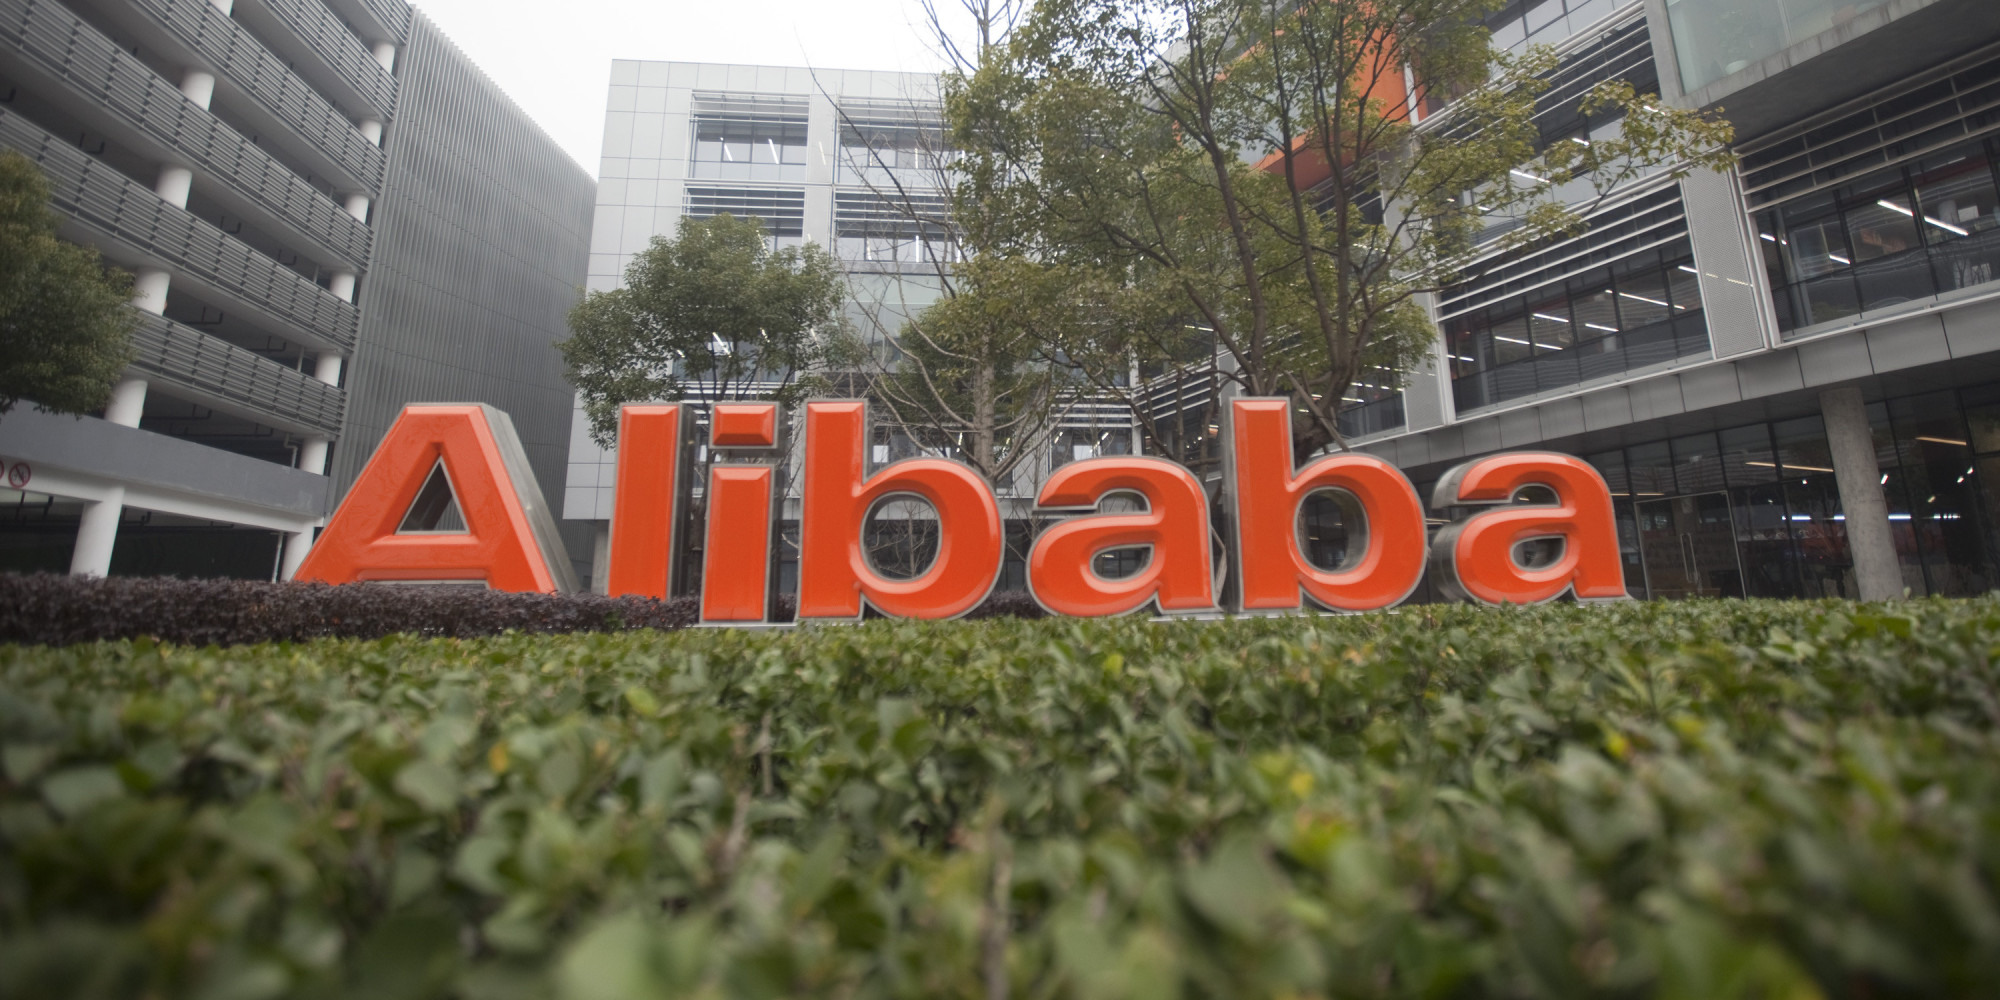 FILE PHOTO: Signage is displayed outside Alibaba.com Ltd.'s headquarters in Hangzhou, Zhejiang Province, China, on Friday, Feb. 24, 2012. Alibaba Group Holding Ltd., which rode China's emergence as an economic superpower over the last 15 years to become a massive online marketplace for everything from forks to forklifts, filed today for what could become the largest U.S. initial public offering ever. Photographer: Nelson Ching/Bloomberg via Getty Images